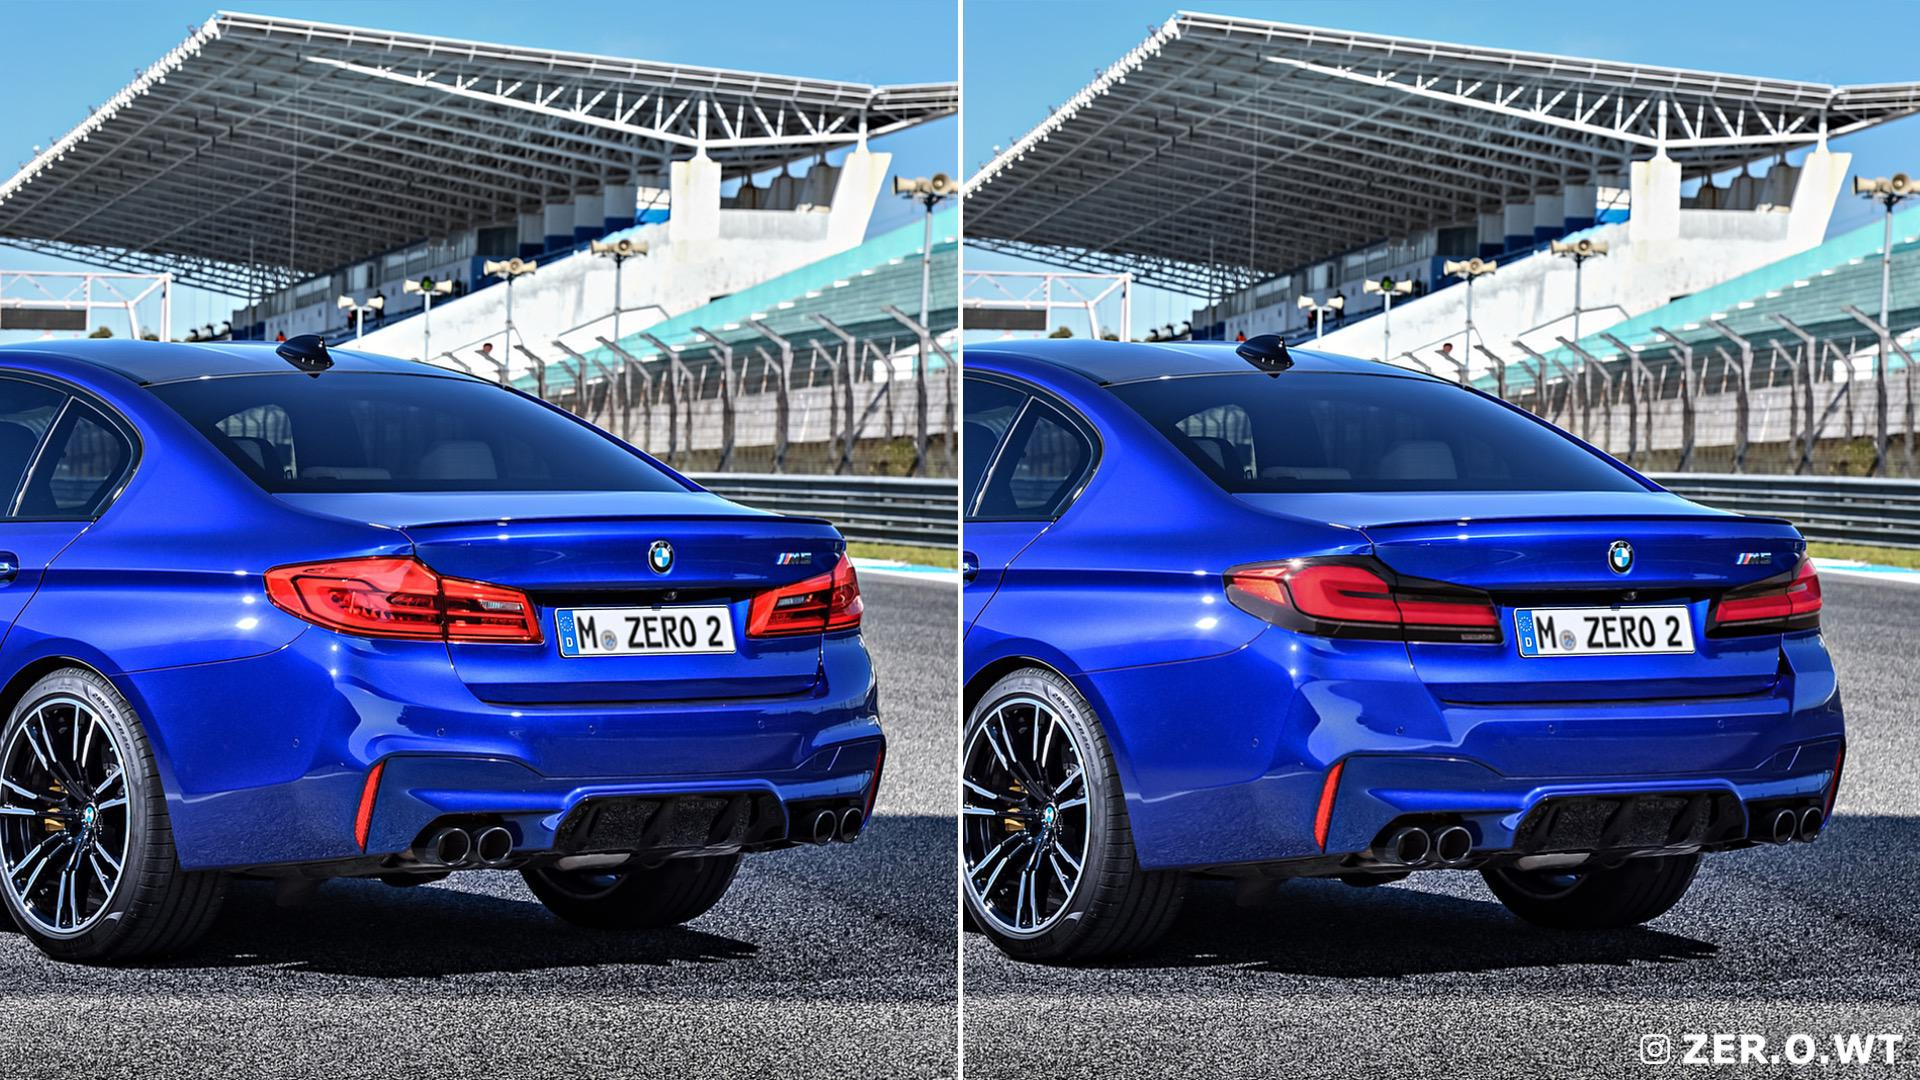 2021 Bmw M5 Facelift Renders Show The Front And Rear Of The F90 Lci Pistonleaks